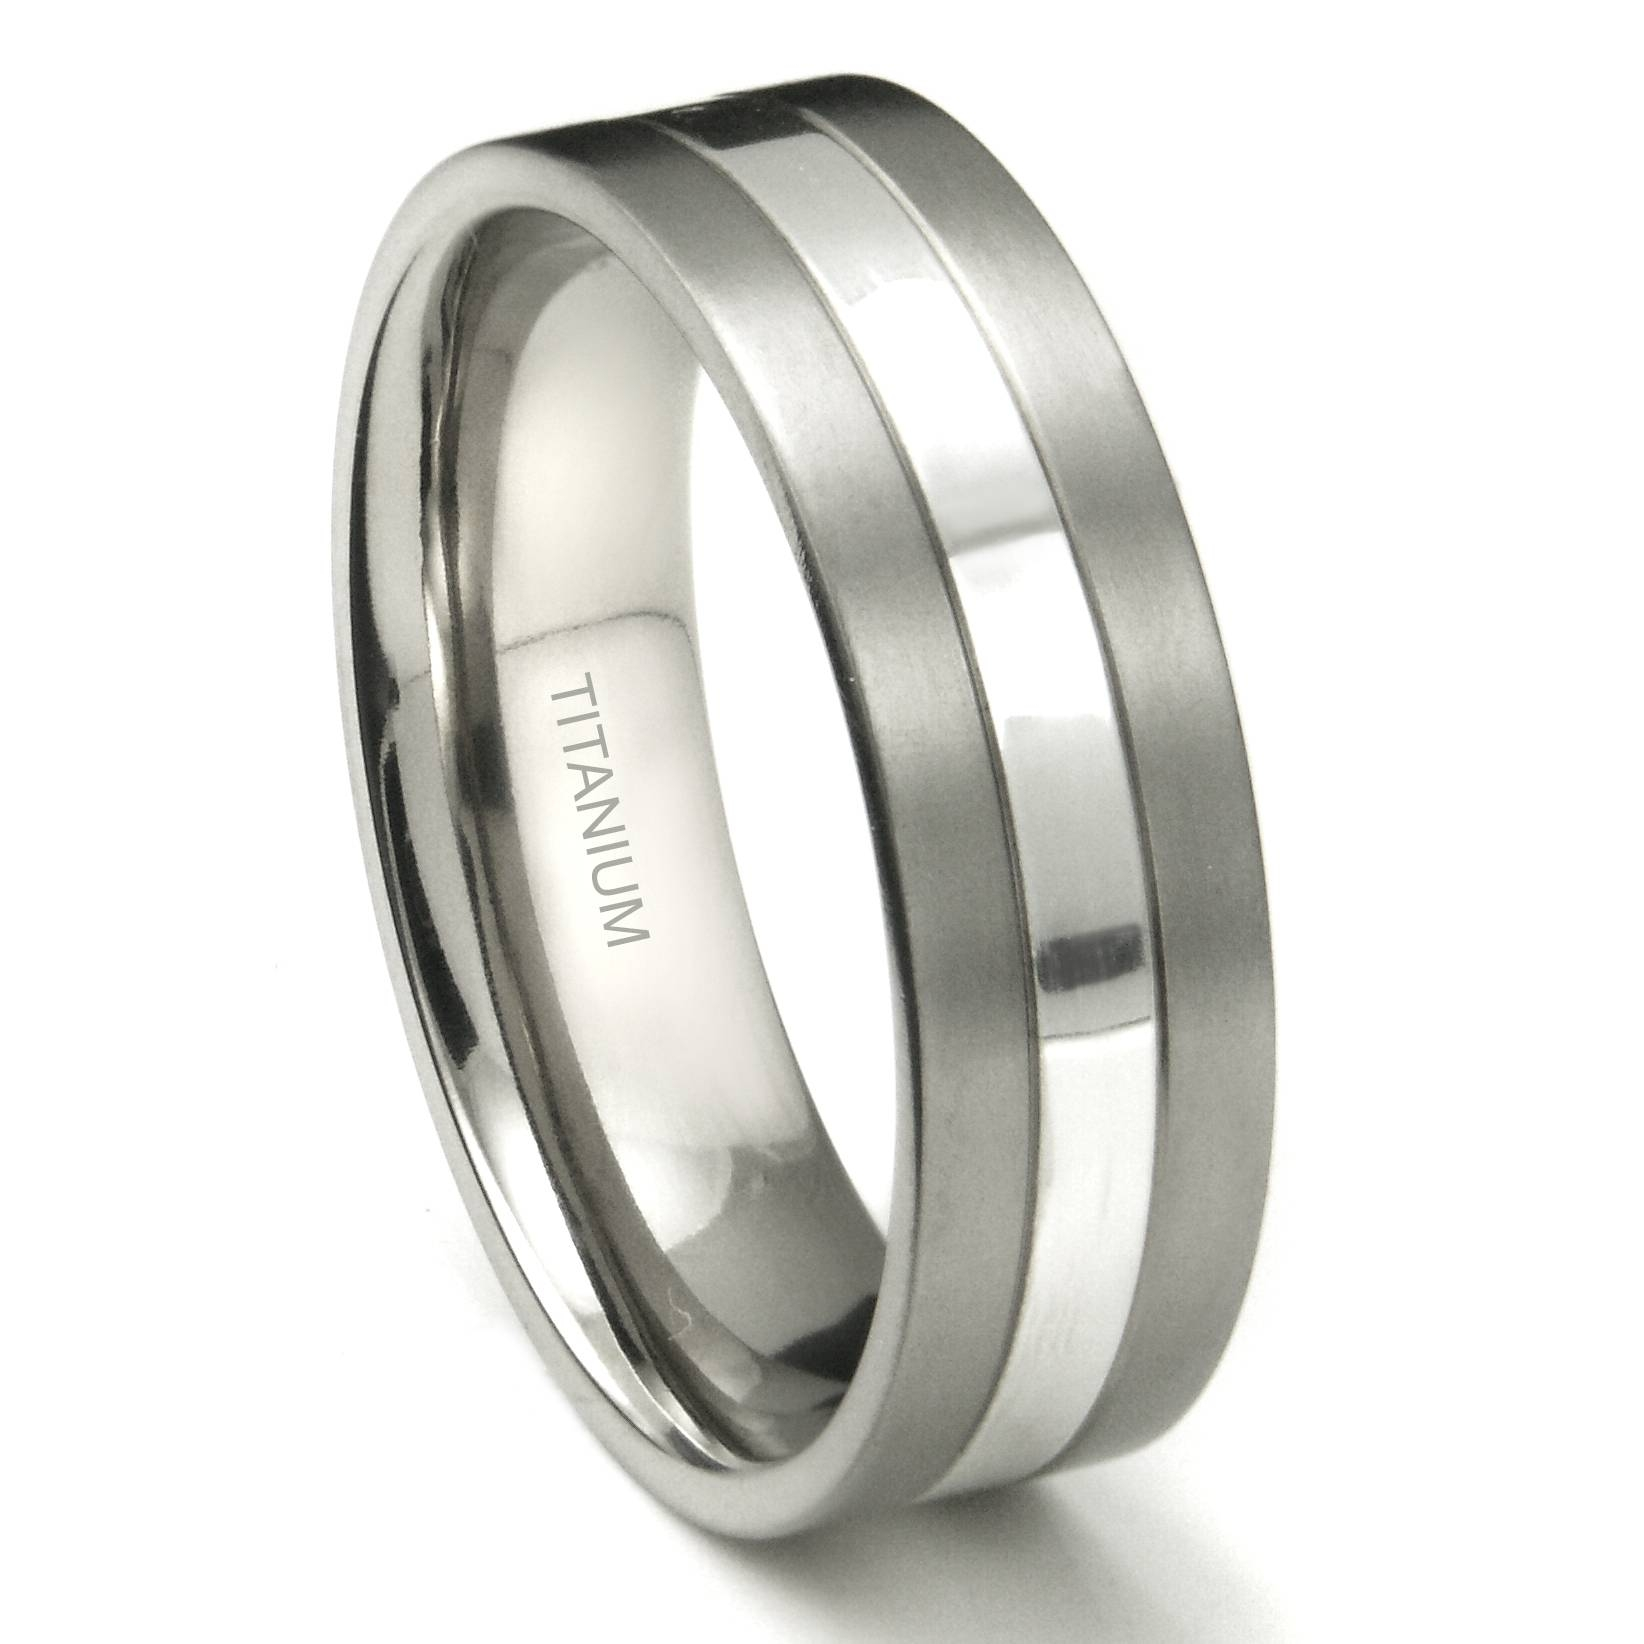 Titanium 7Mm Two Tone Wedding Ring Intended For 7Mm Titanium Wedding Bands (View 13 of 15)